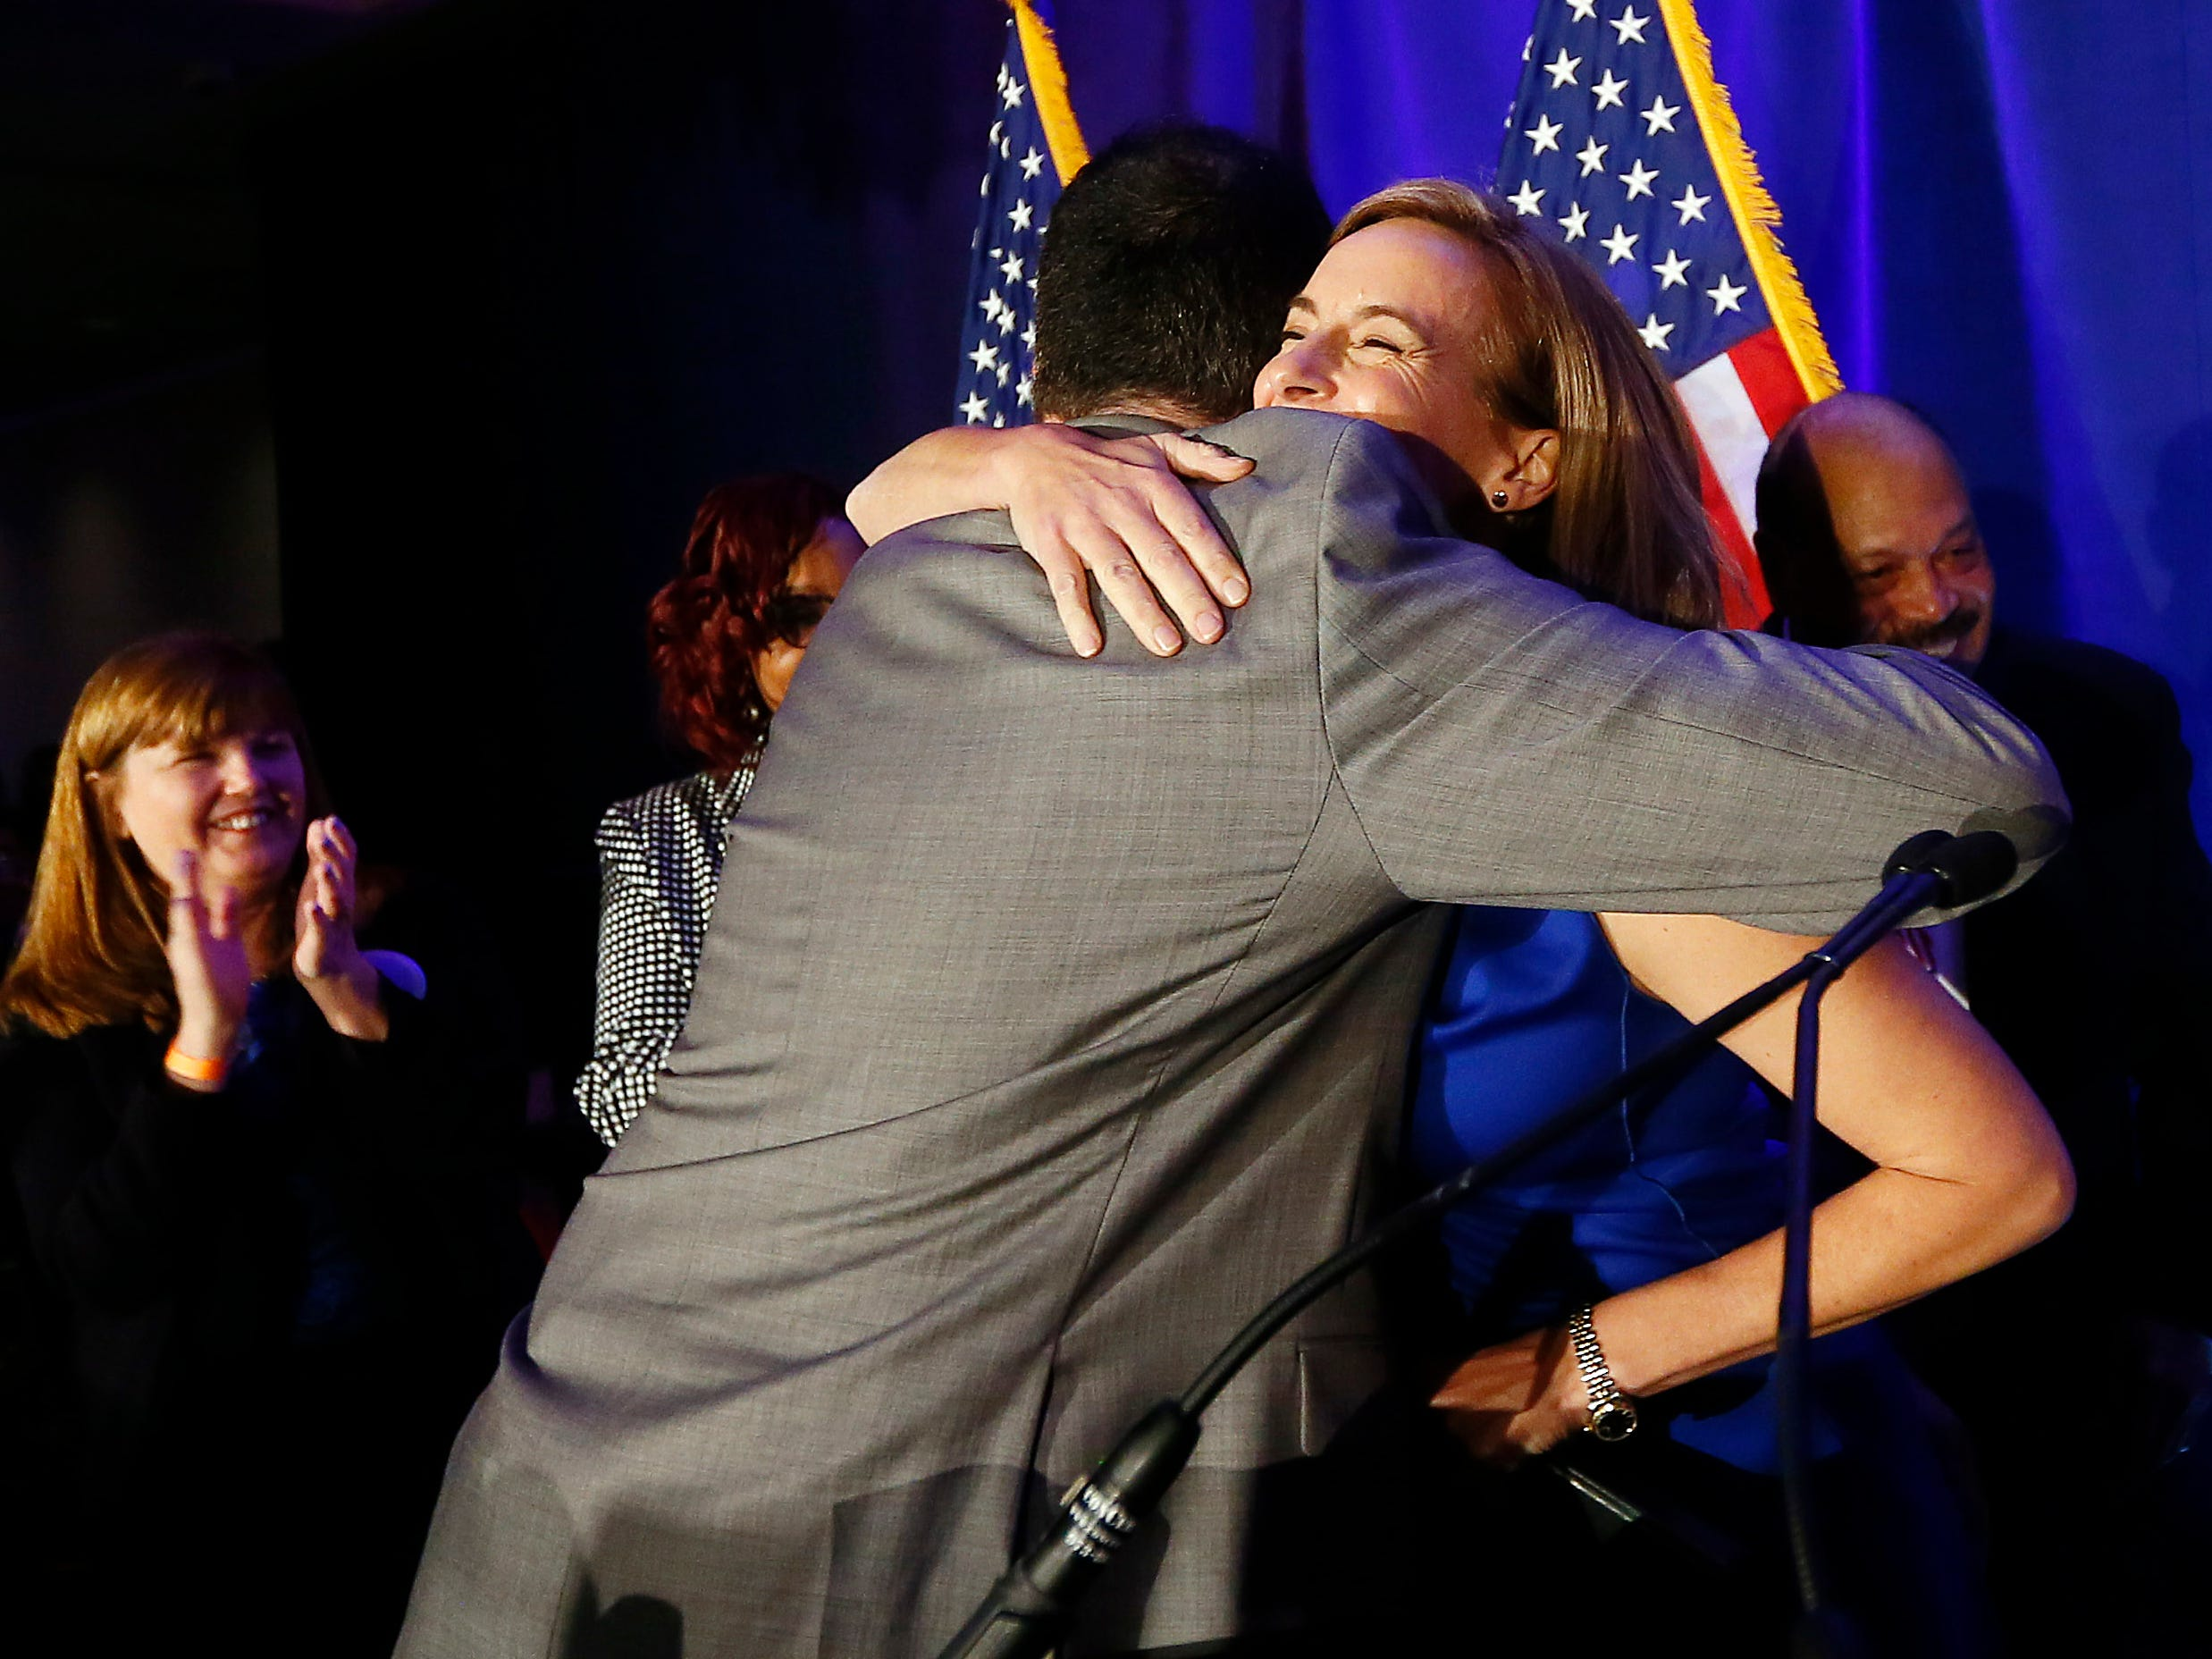 Mikie Sherrill gives a hug to Morris County Democratic Chairman Chip Robinson before she made her acceptance speech, winning for the Democrats a seat held by Republicans for more than 30 years. Sherrill defeated Republican candidate, state Assemblyman Jay Webber in the 11th District.